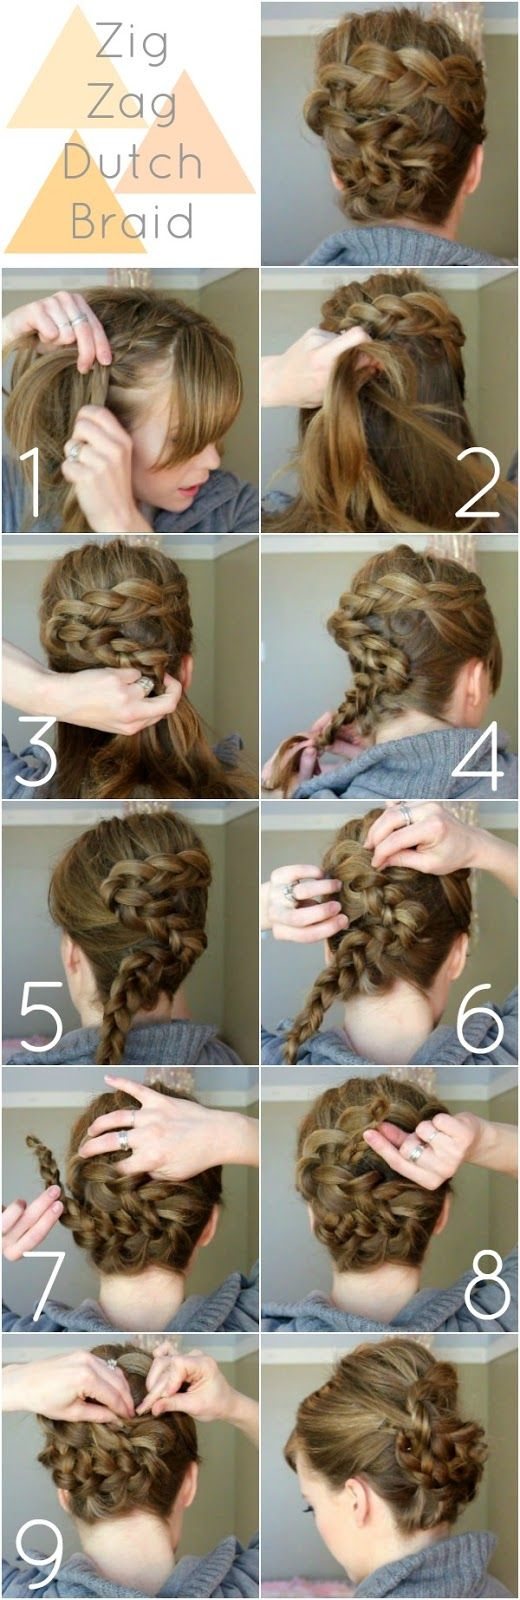 Zig Zag Dutch Braid